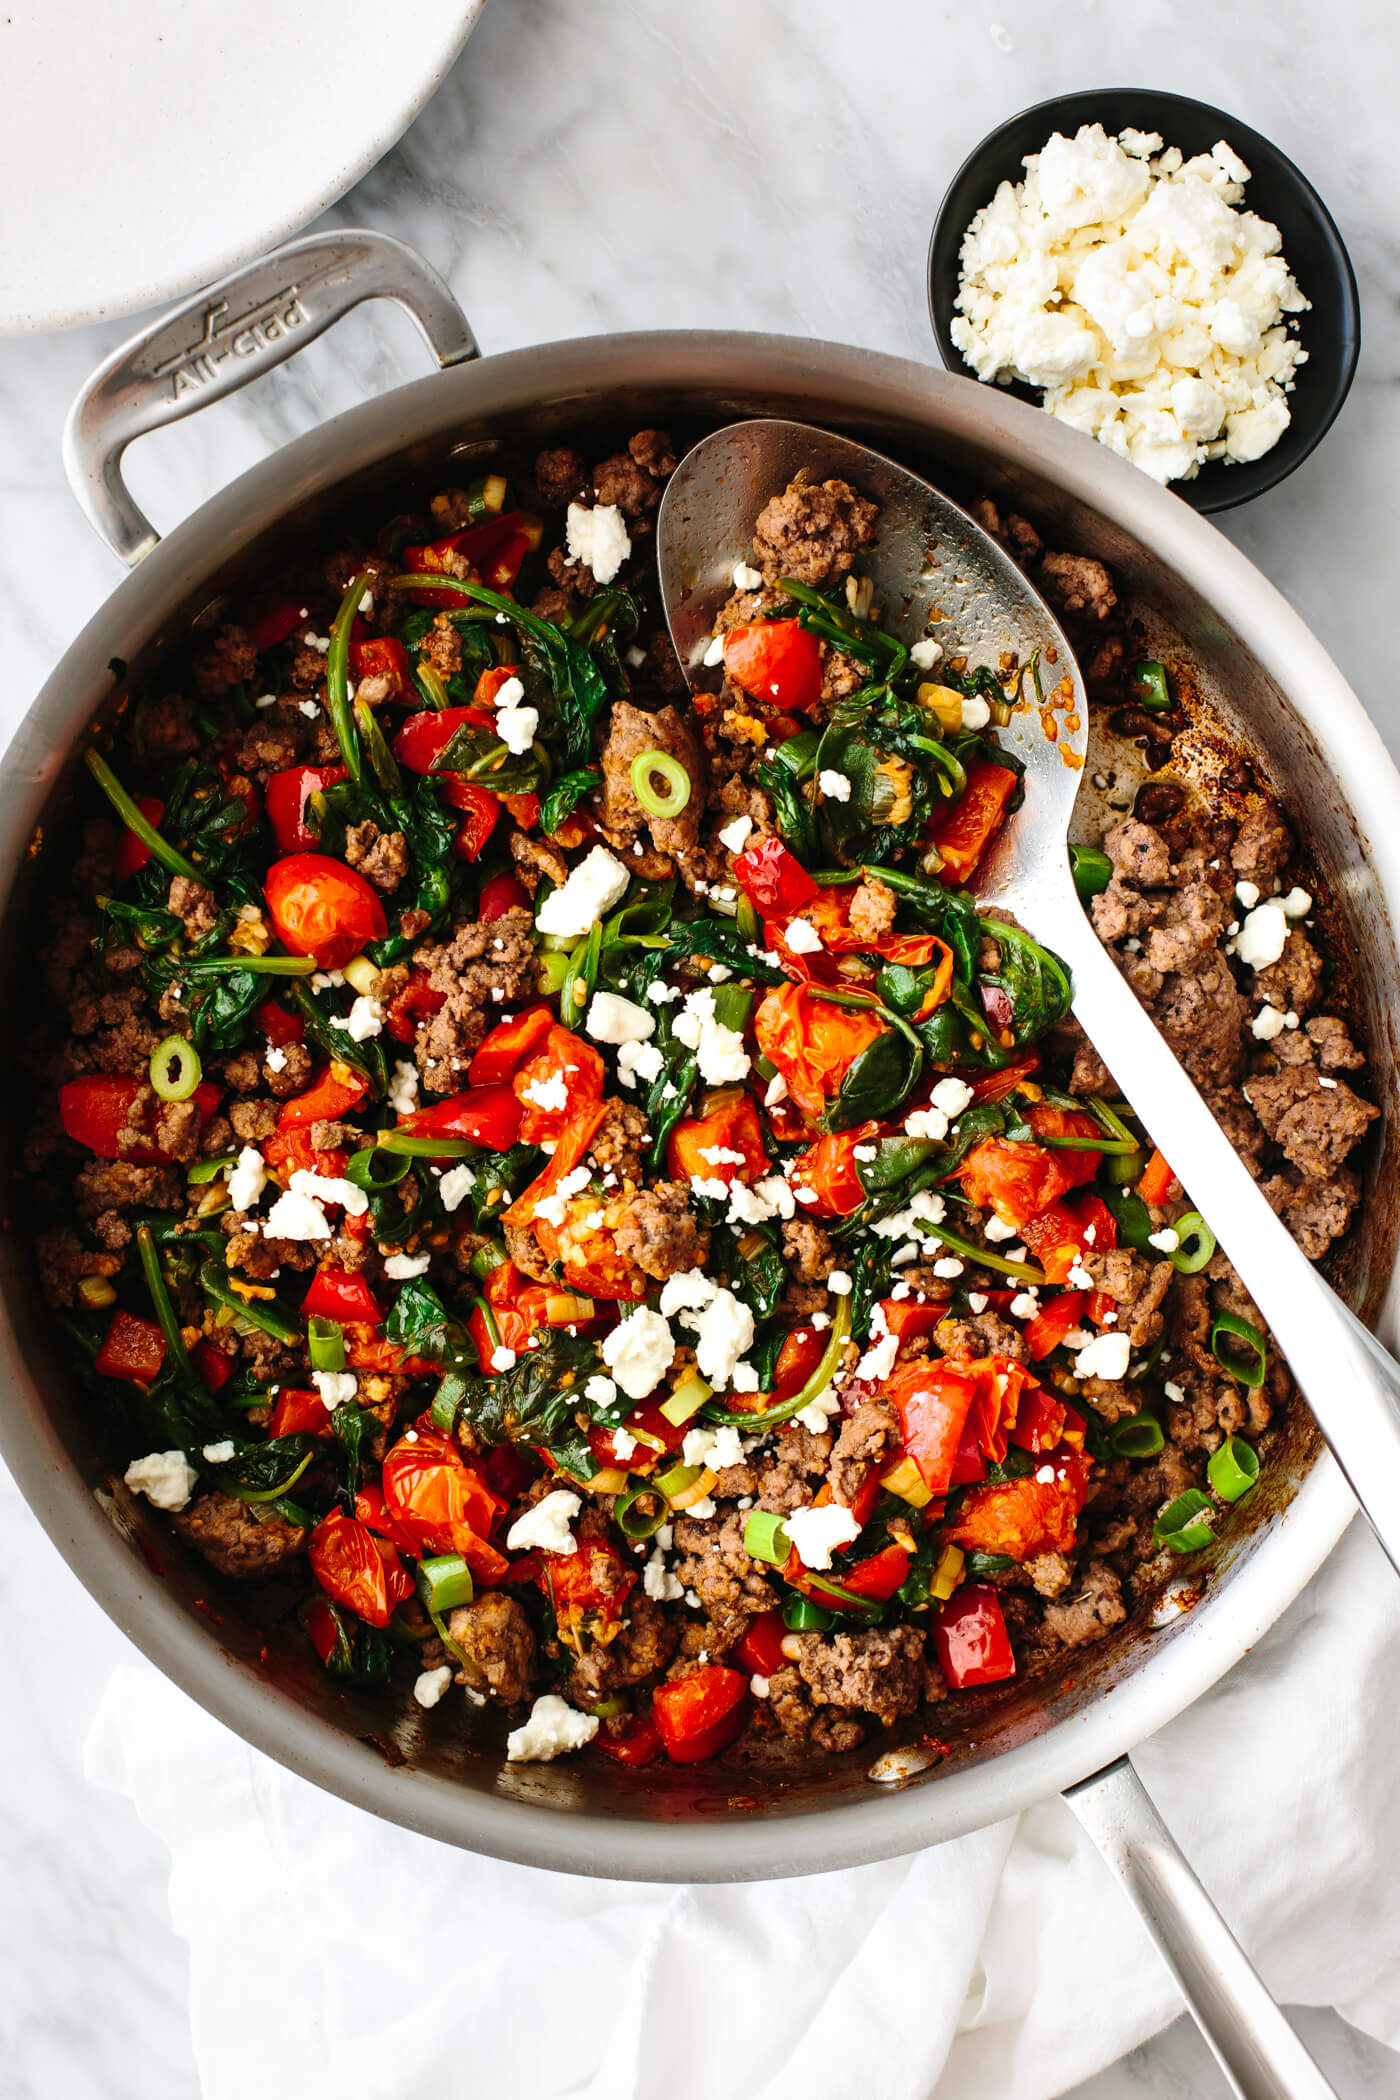 Mediterranean ground beef stir fry in a pan with a slotted spoon.